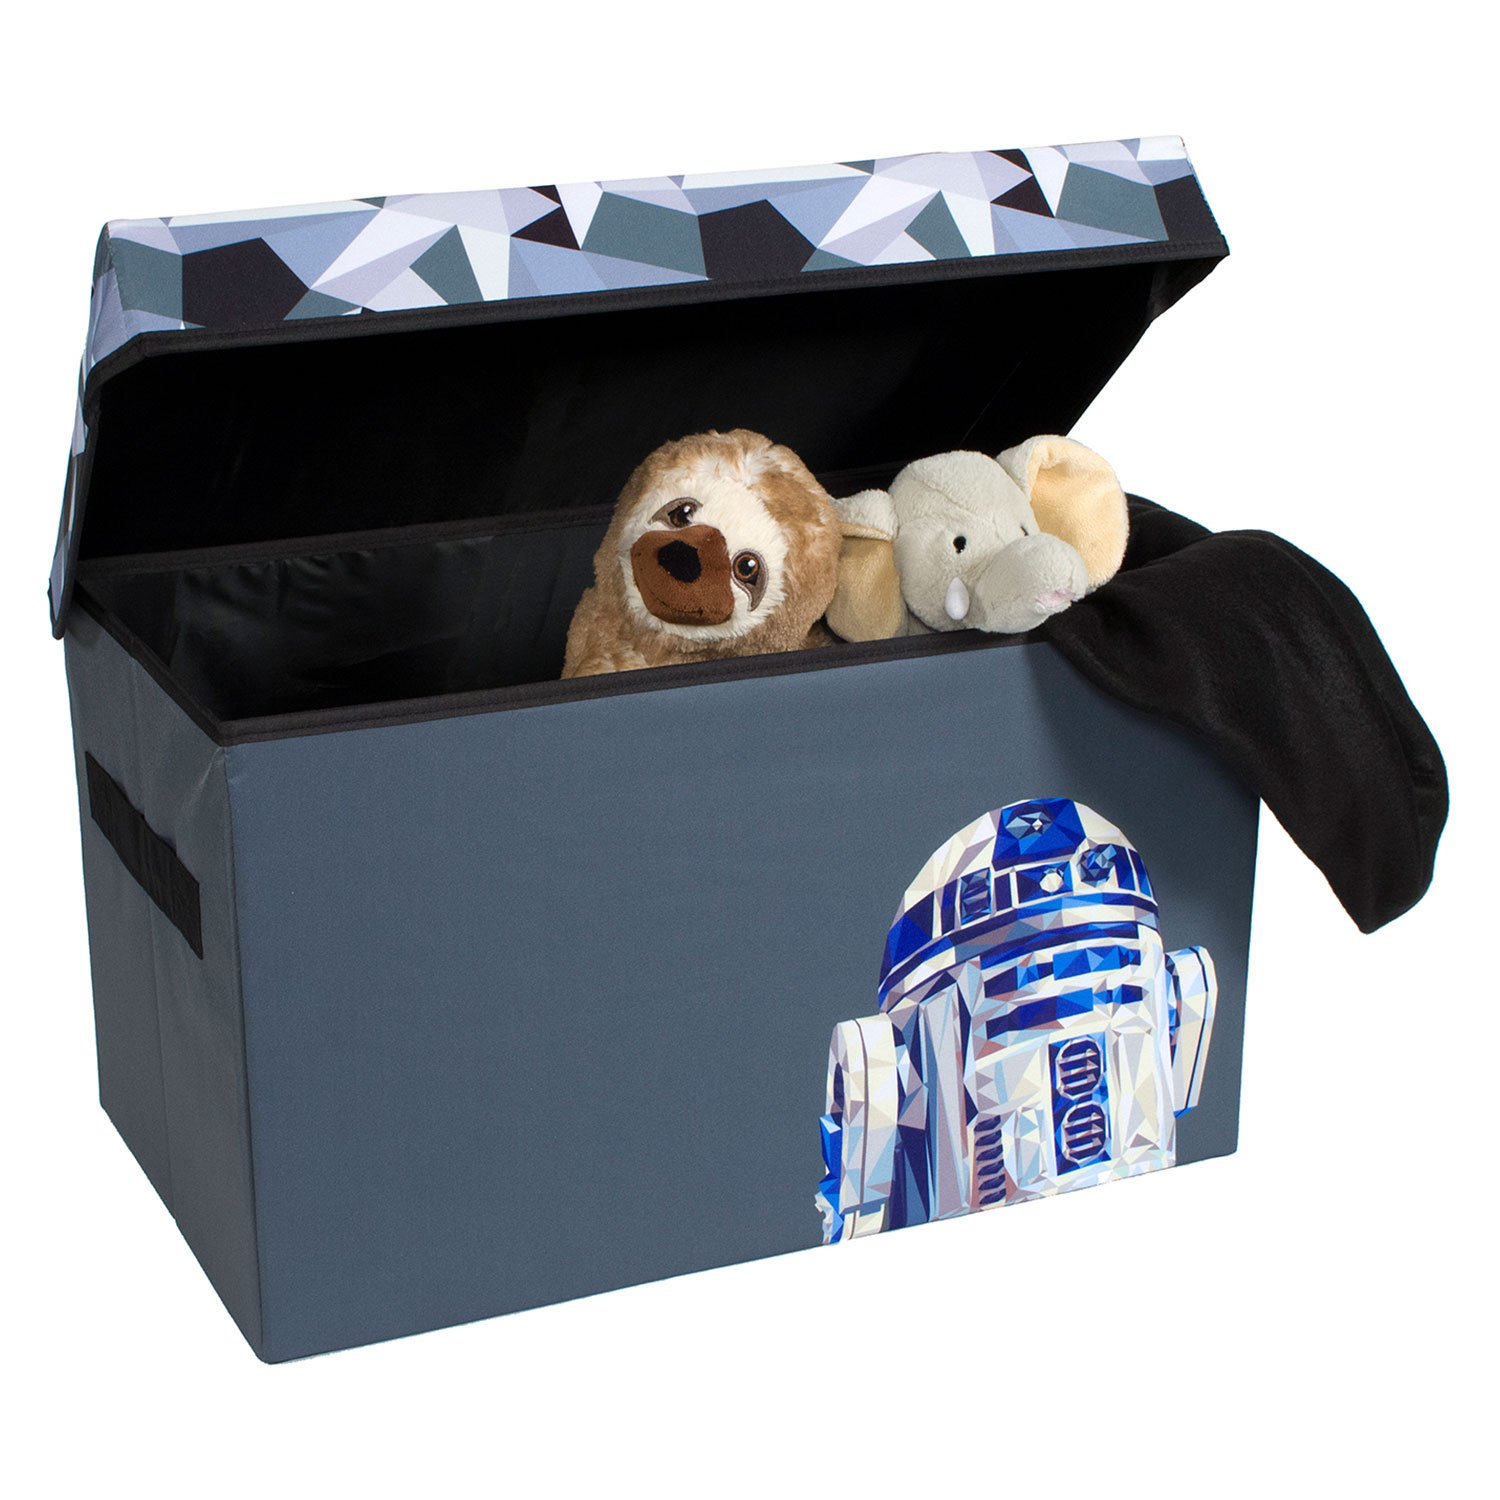 R2-D2 Collapsible KidsToy Storage Chest byDisney Star Wars - Flip-Top Toy Organizer Bin for Closets, Kids Bedroom, Boys & Girls Toys - Foldable Toy Basket Organizer with Strong Handles & Design